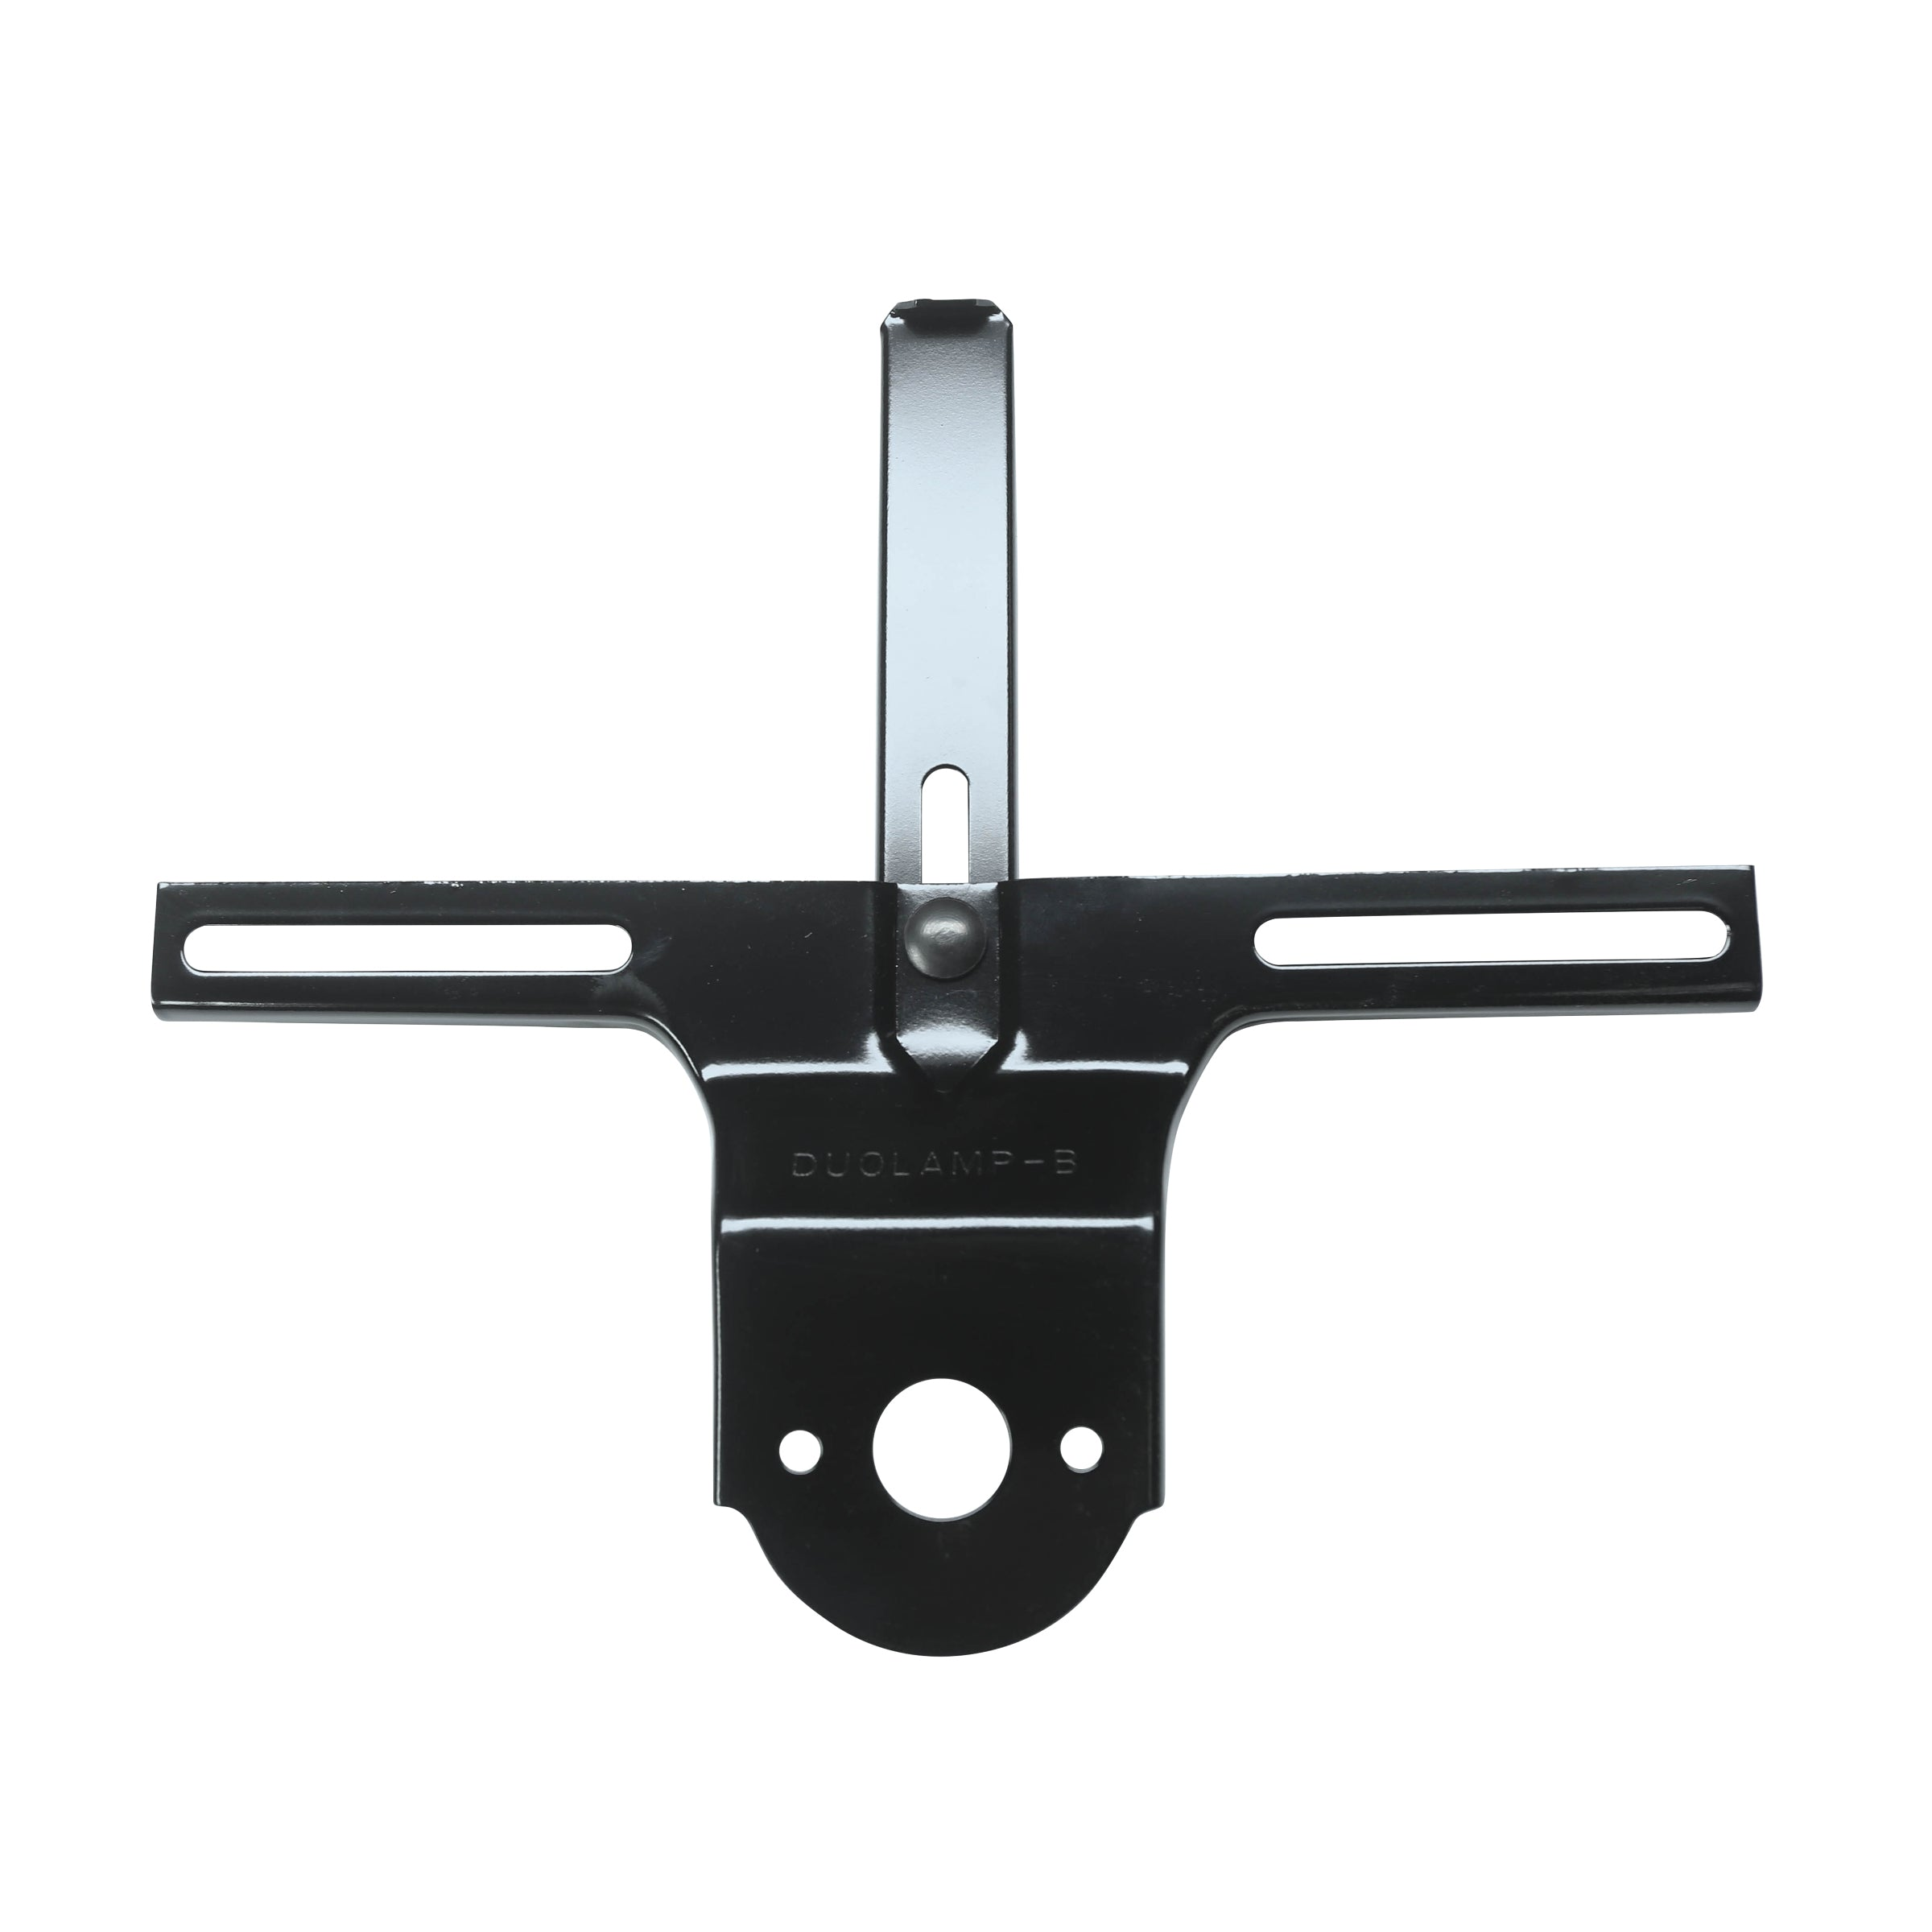 License Plate Bracket (Rear - Black) • 1933-36 Ford Passenger